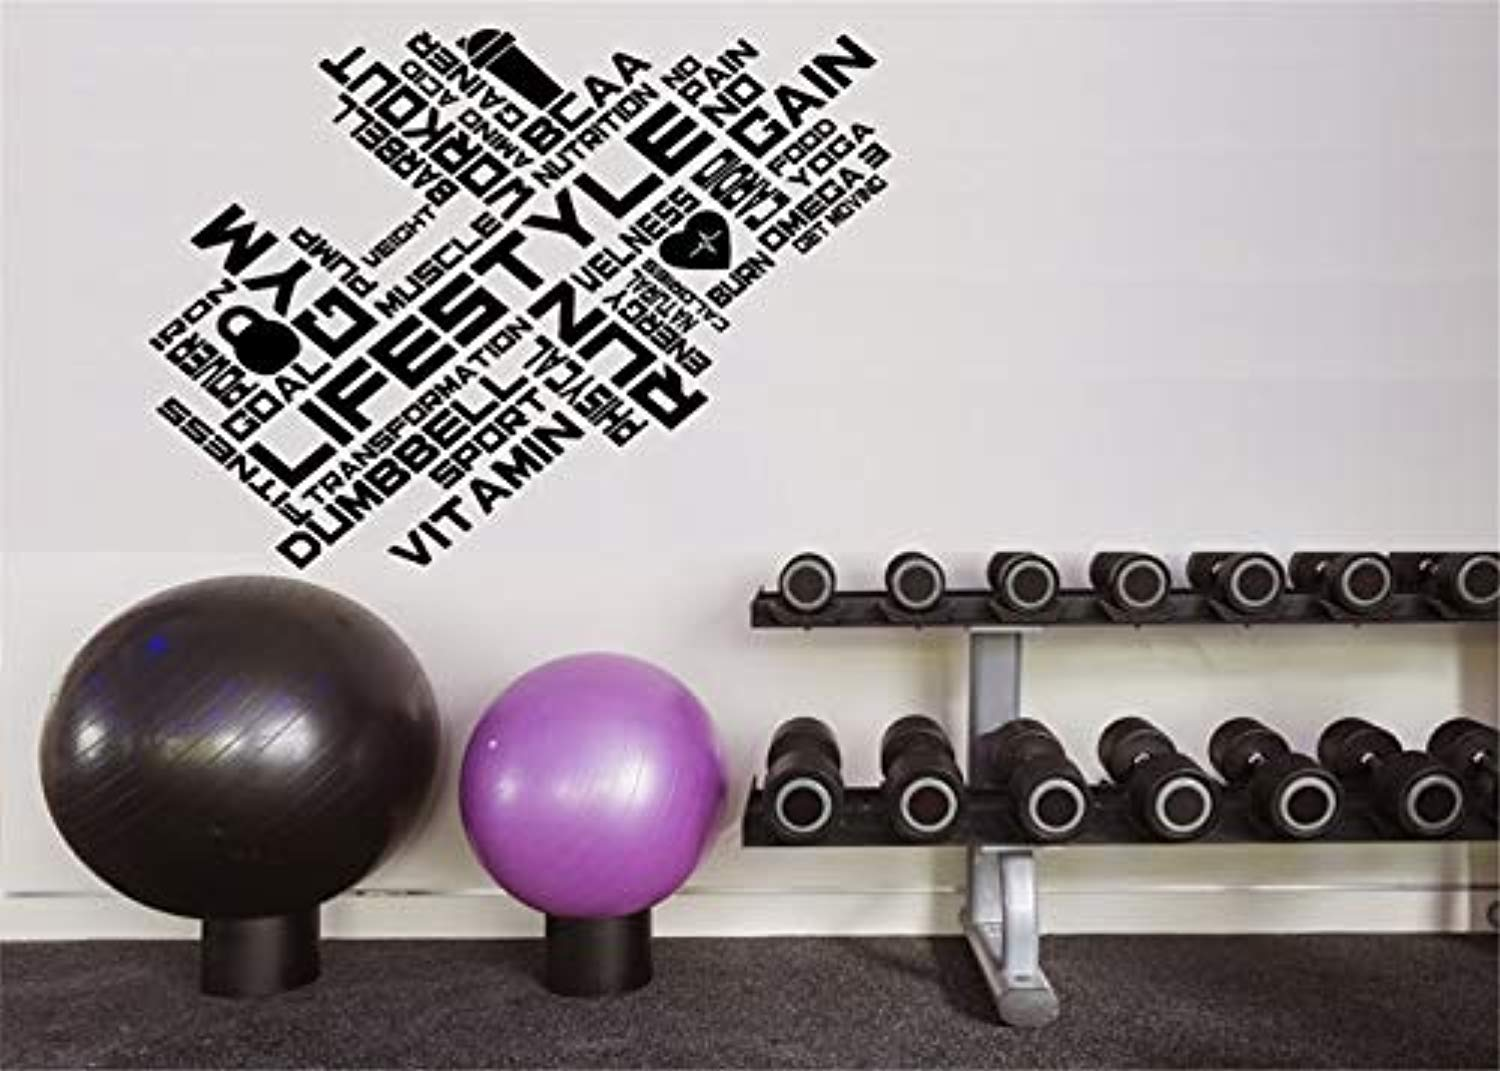 22 X 29 In Motivational Inspirational Gym Wall Decals Workout Fitness Crossfit Exercise Room Art Decor Vinyl Stickers Buy Online In Gibraltar At Gibraltar Desertcart Com Productid 99874206